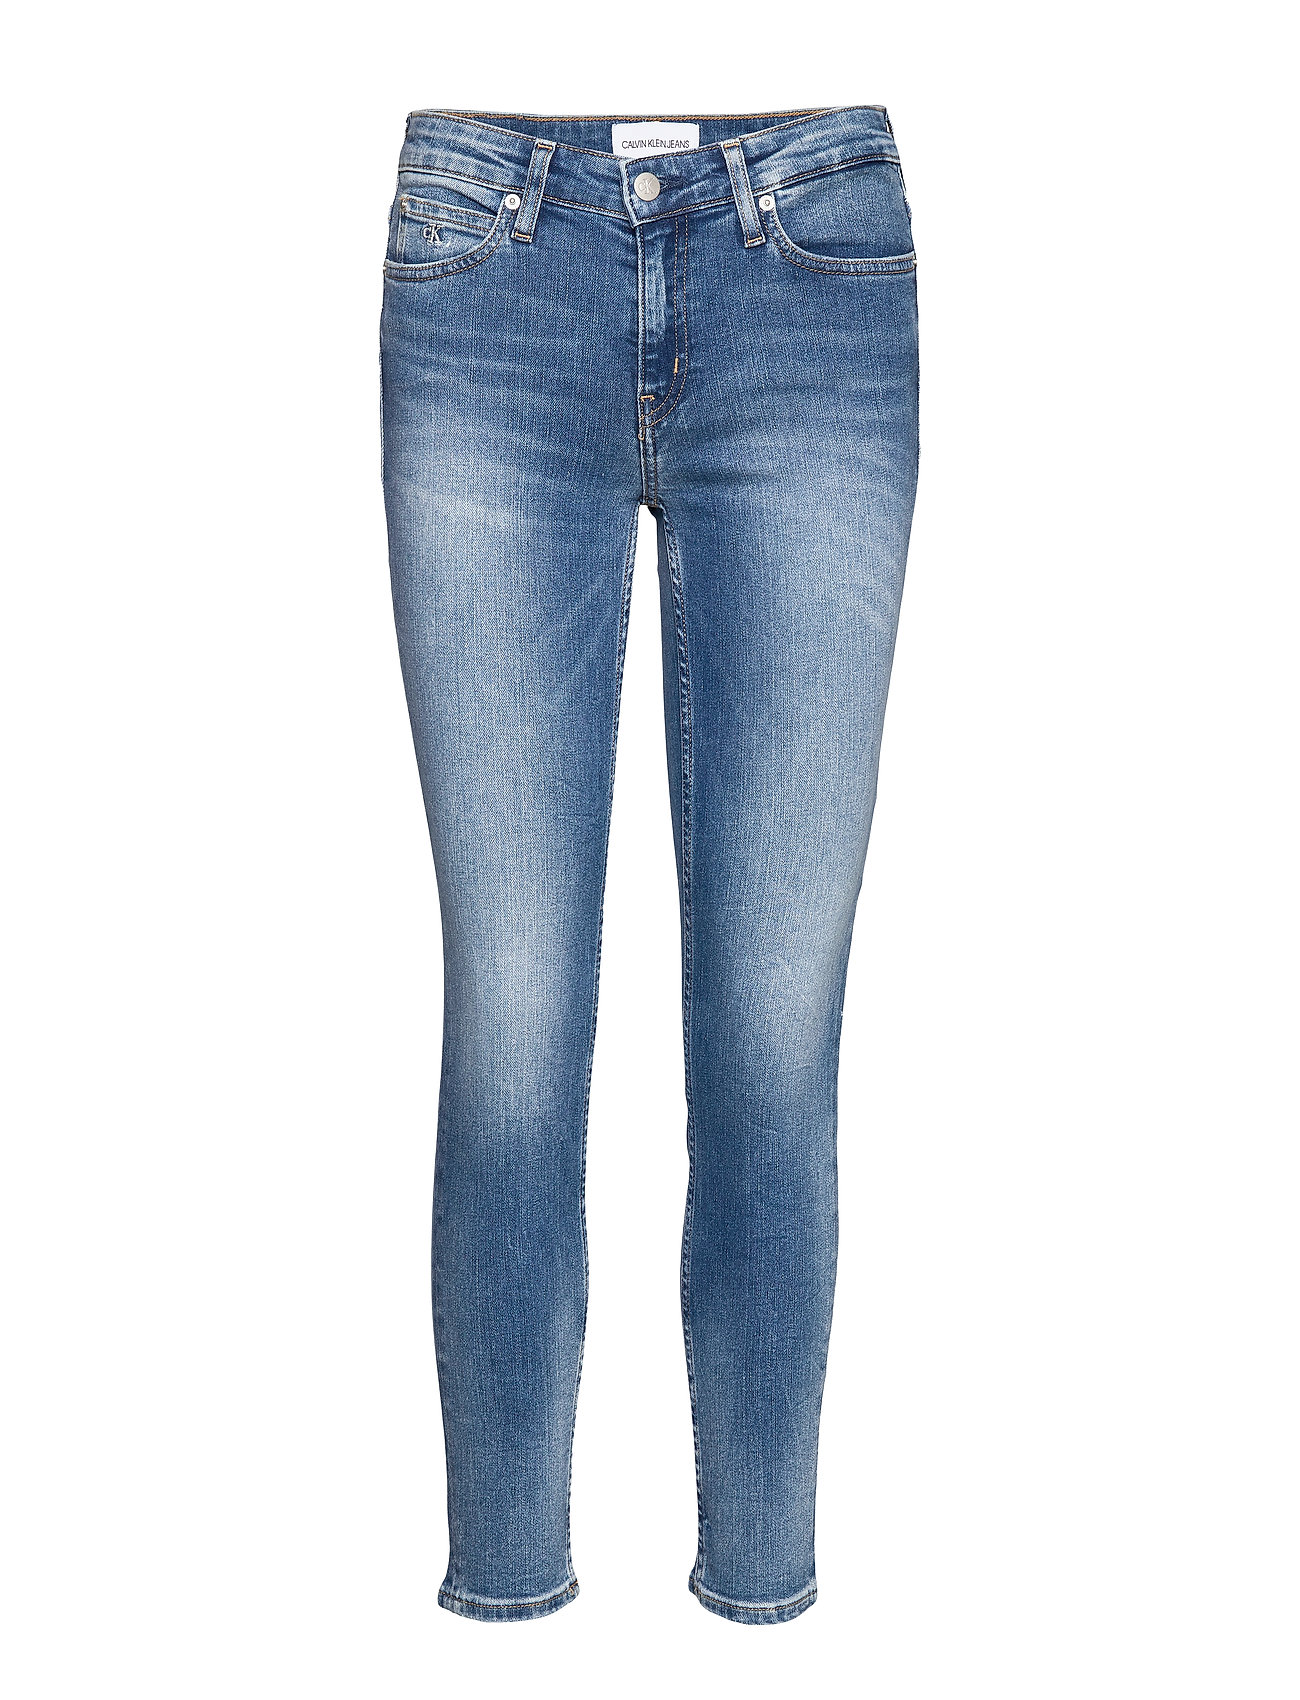 Calvin Klein Jeans CKJ 011 MID RISE SKINNY ANKLE - CA108 BLUE EMBROIDERY